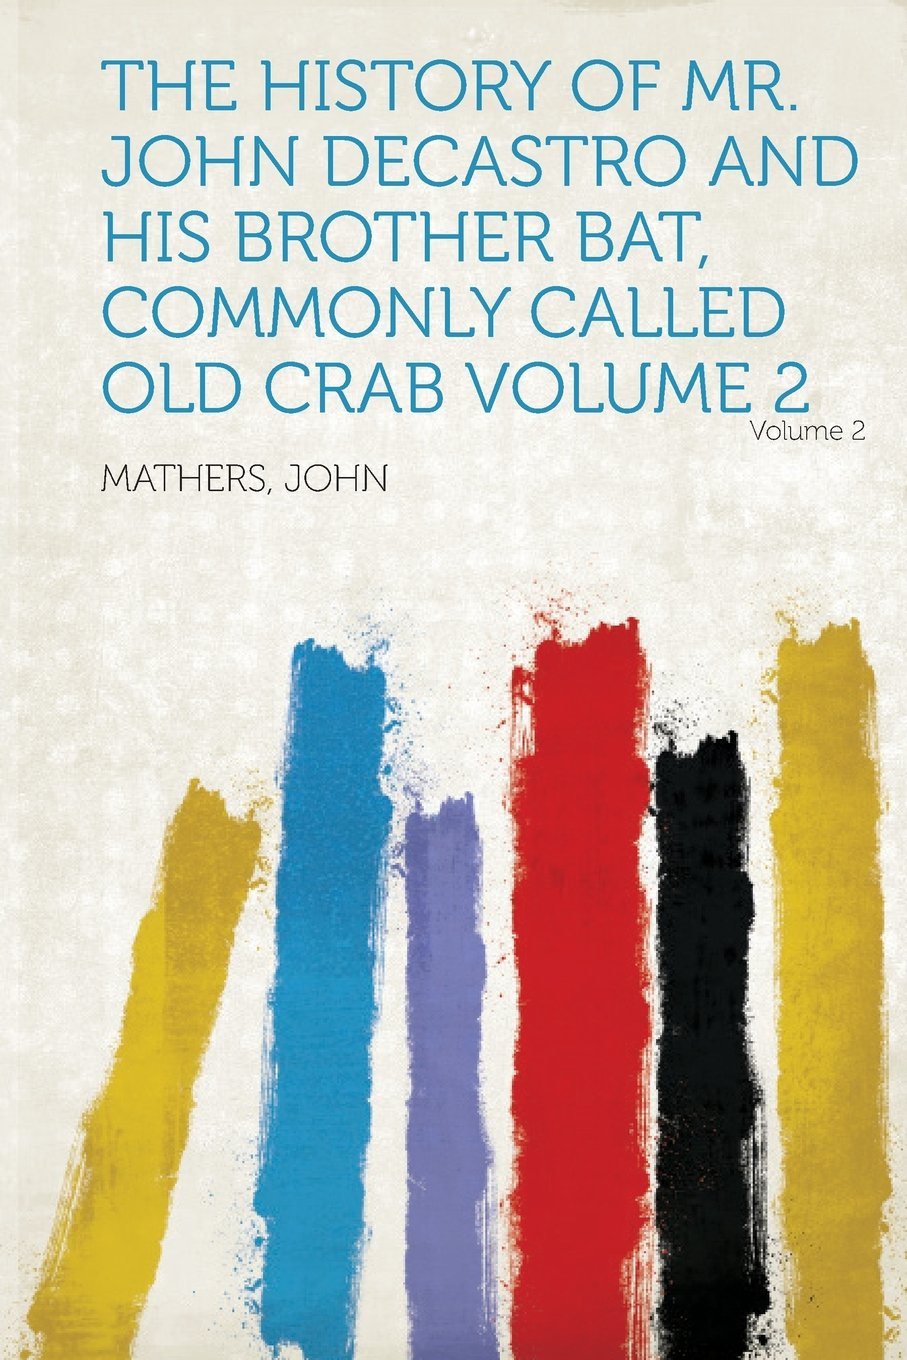 Download The History of Mr. John Decastro and His Brother Bat, Commonly Called Old Crab Volume 2 pdf